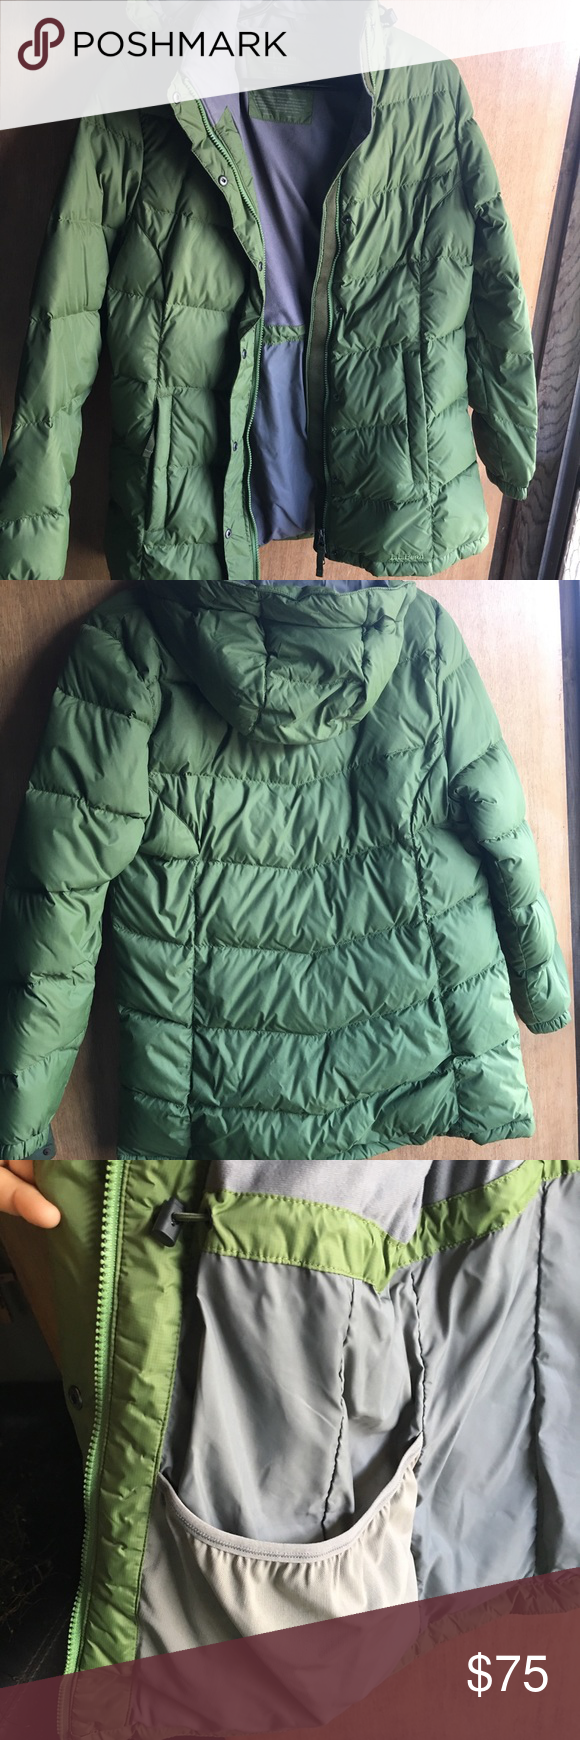 Like new never worn LL Bean down coat. Size Small Pine